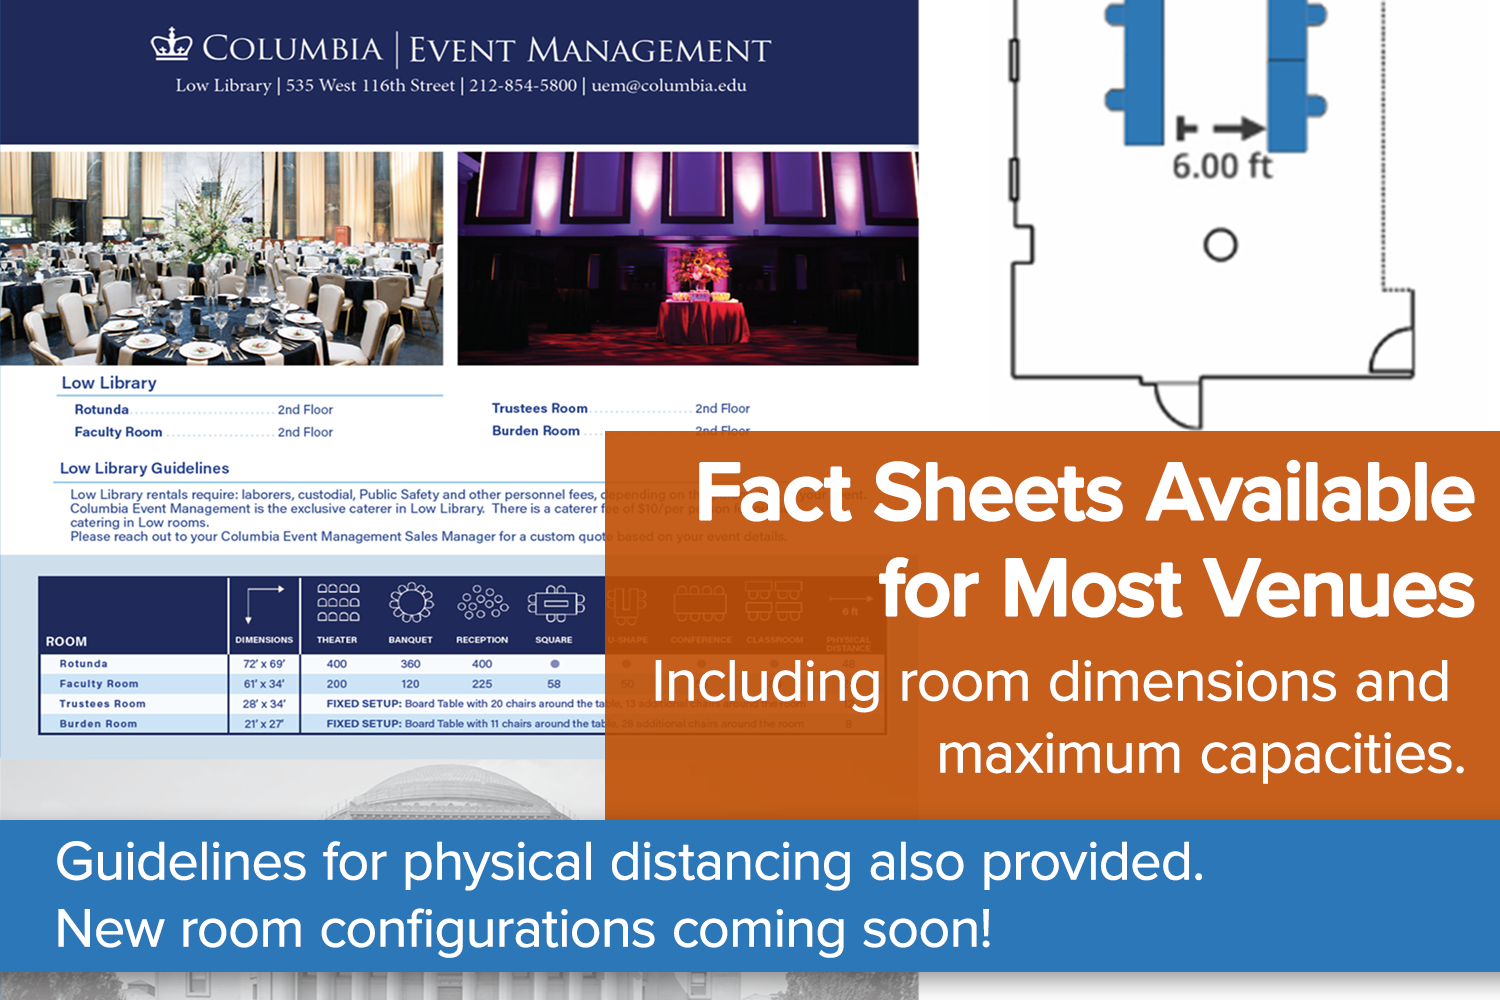 Fact Sheets for Most Venues